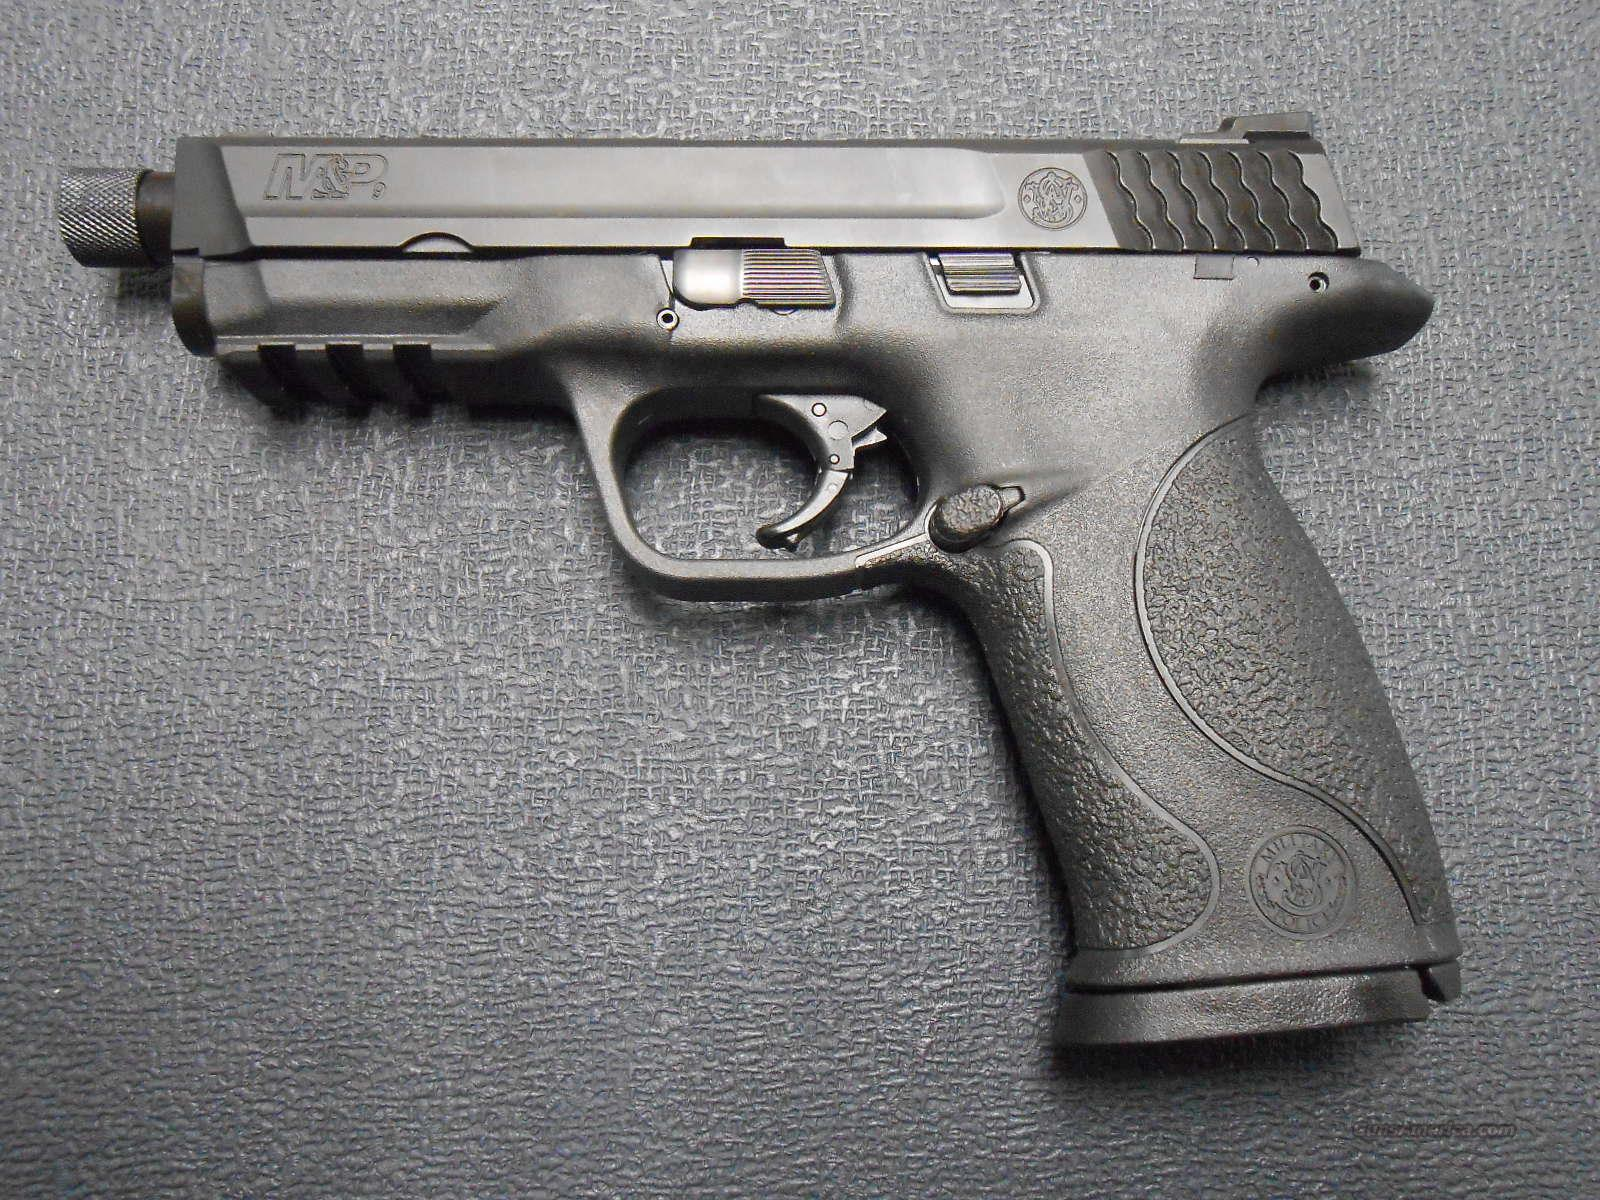 "S&W M&P 9 4.25"" Threaded Barrel 150922  Guns > Pistols > Smith & Wesson Pistols - Autos > Polymer Frame"